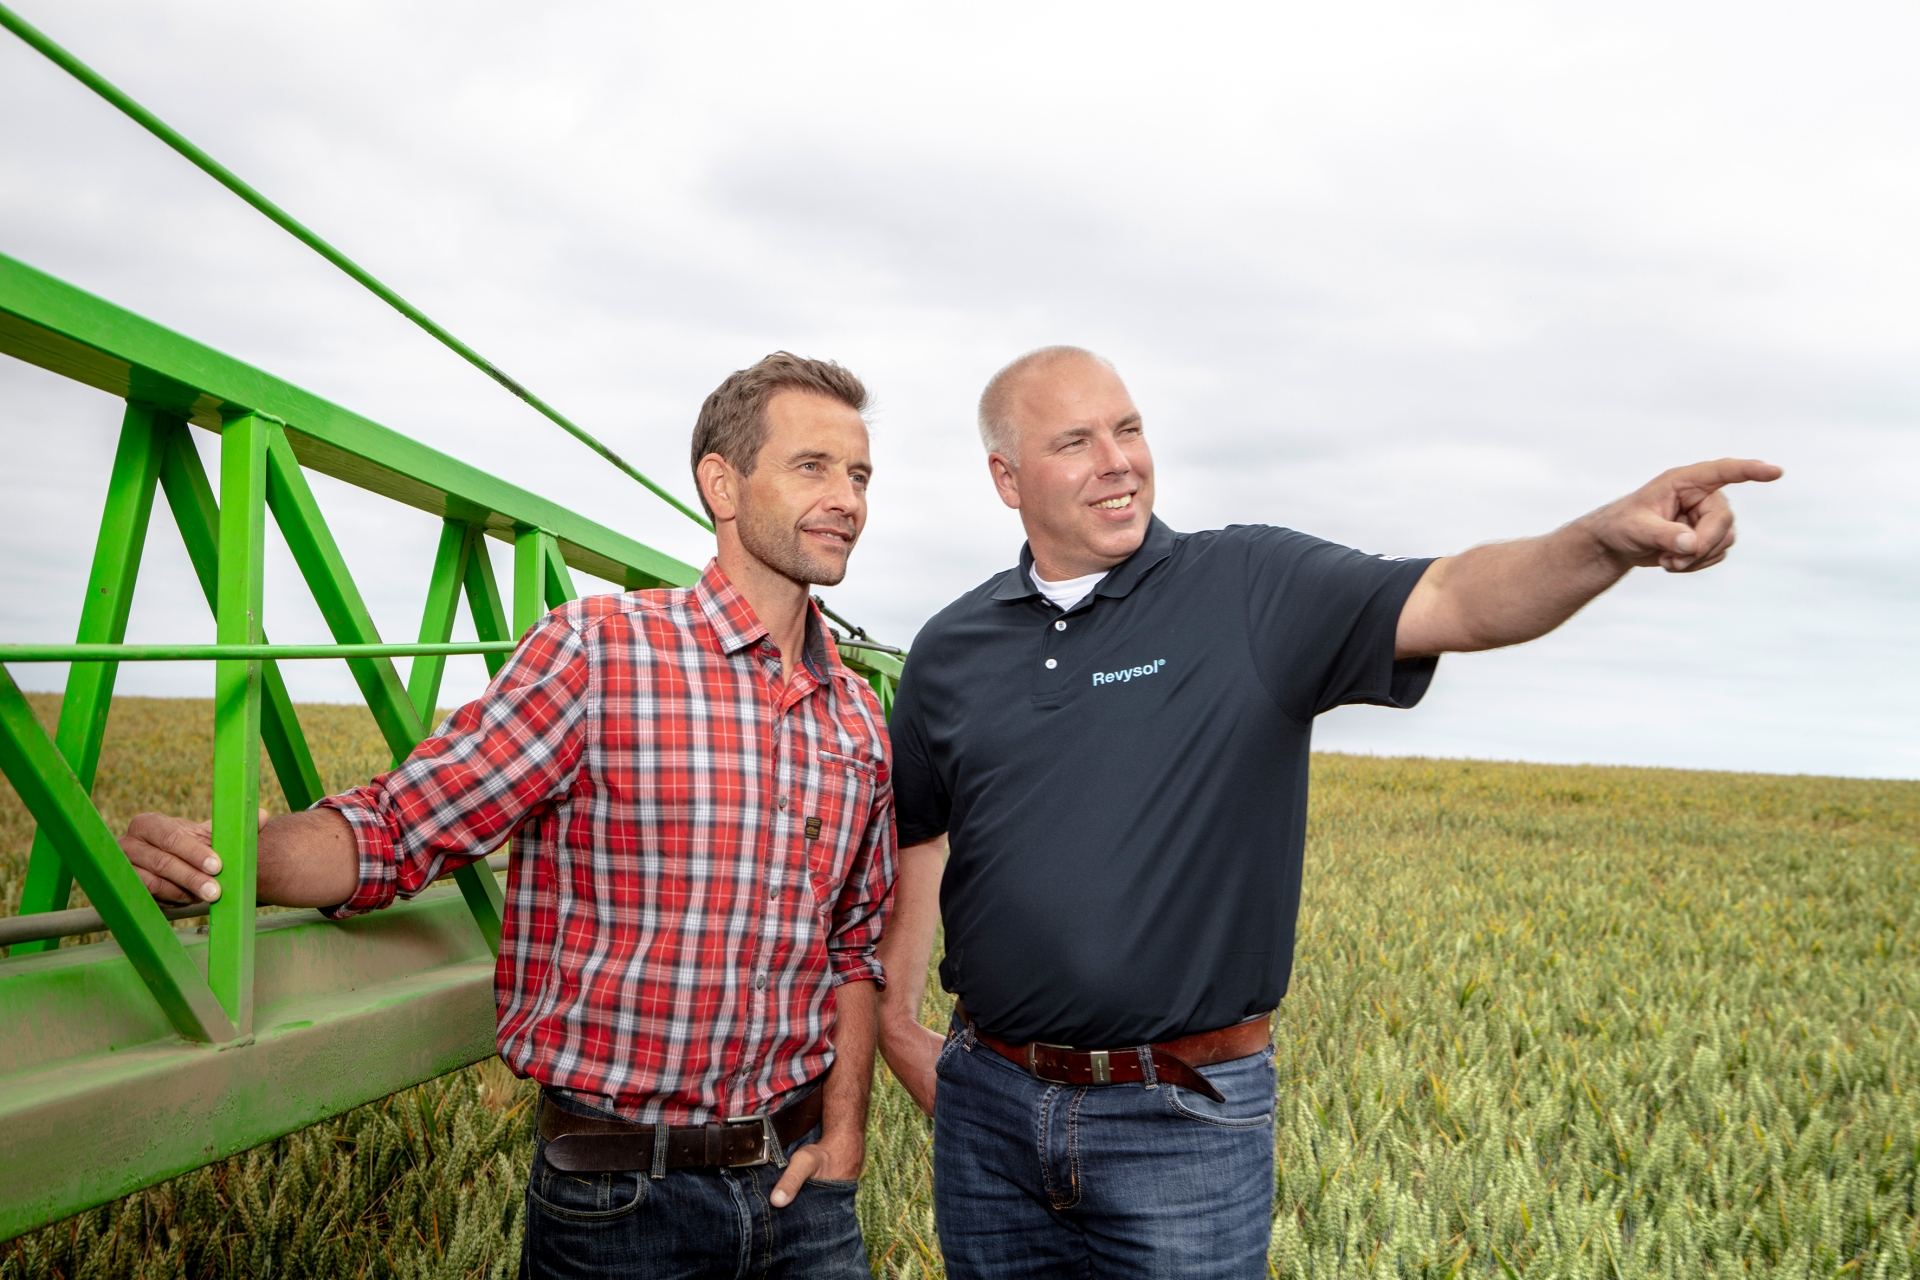 basfs focused approach boosts agricultural innovation by 25 per cent